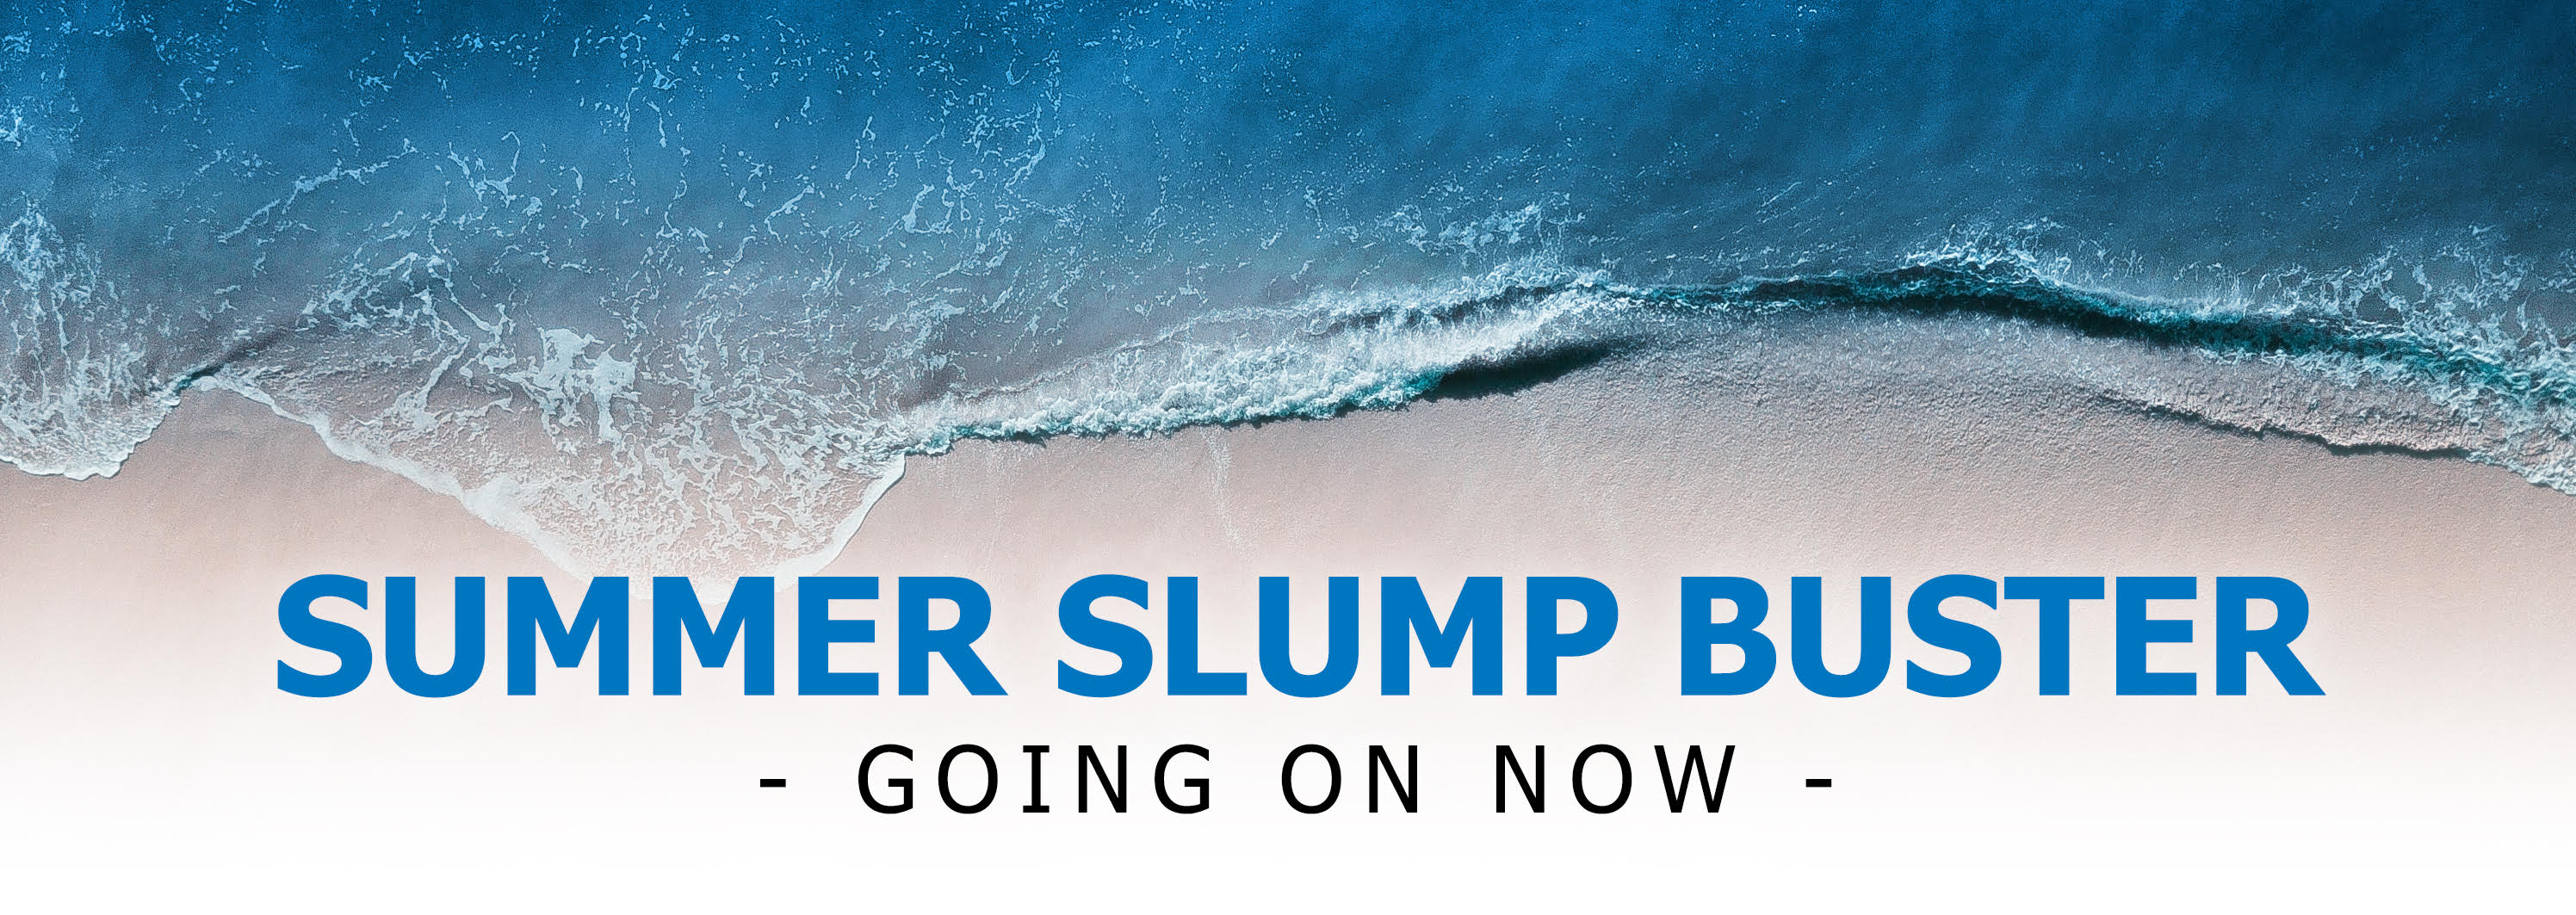 Summer slump buster, going on now!